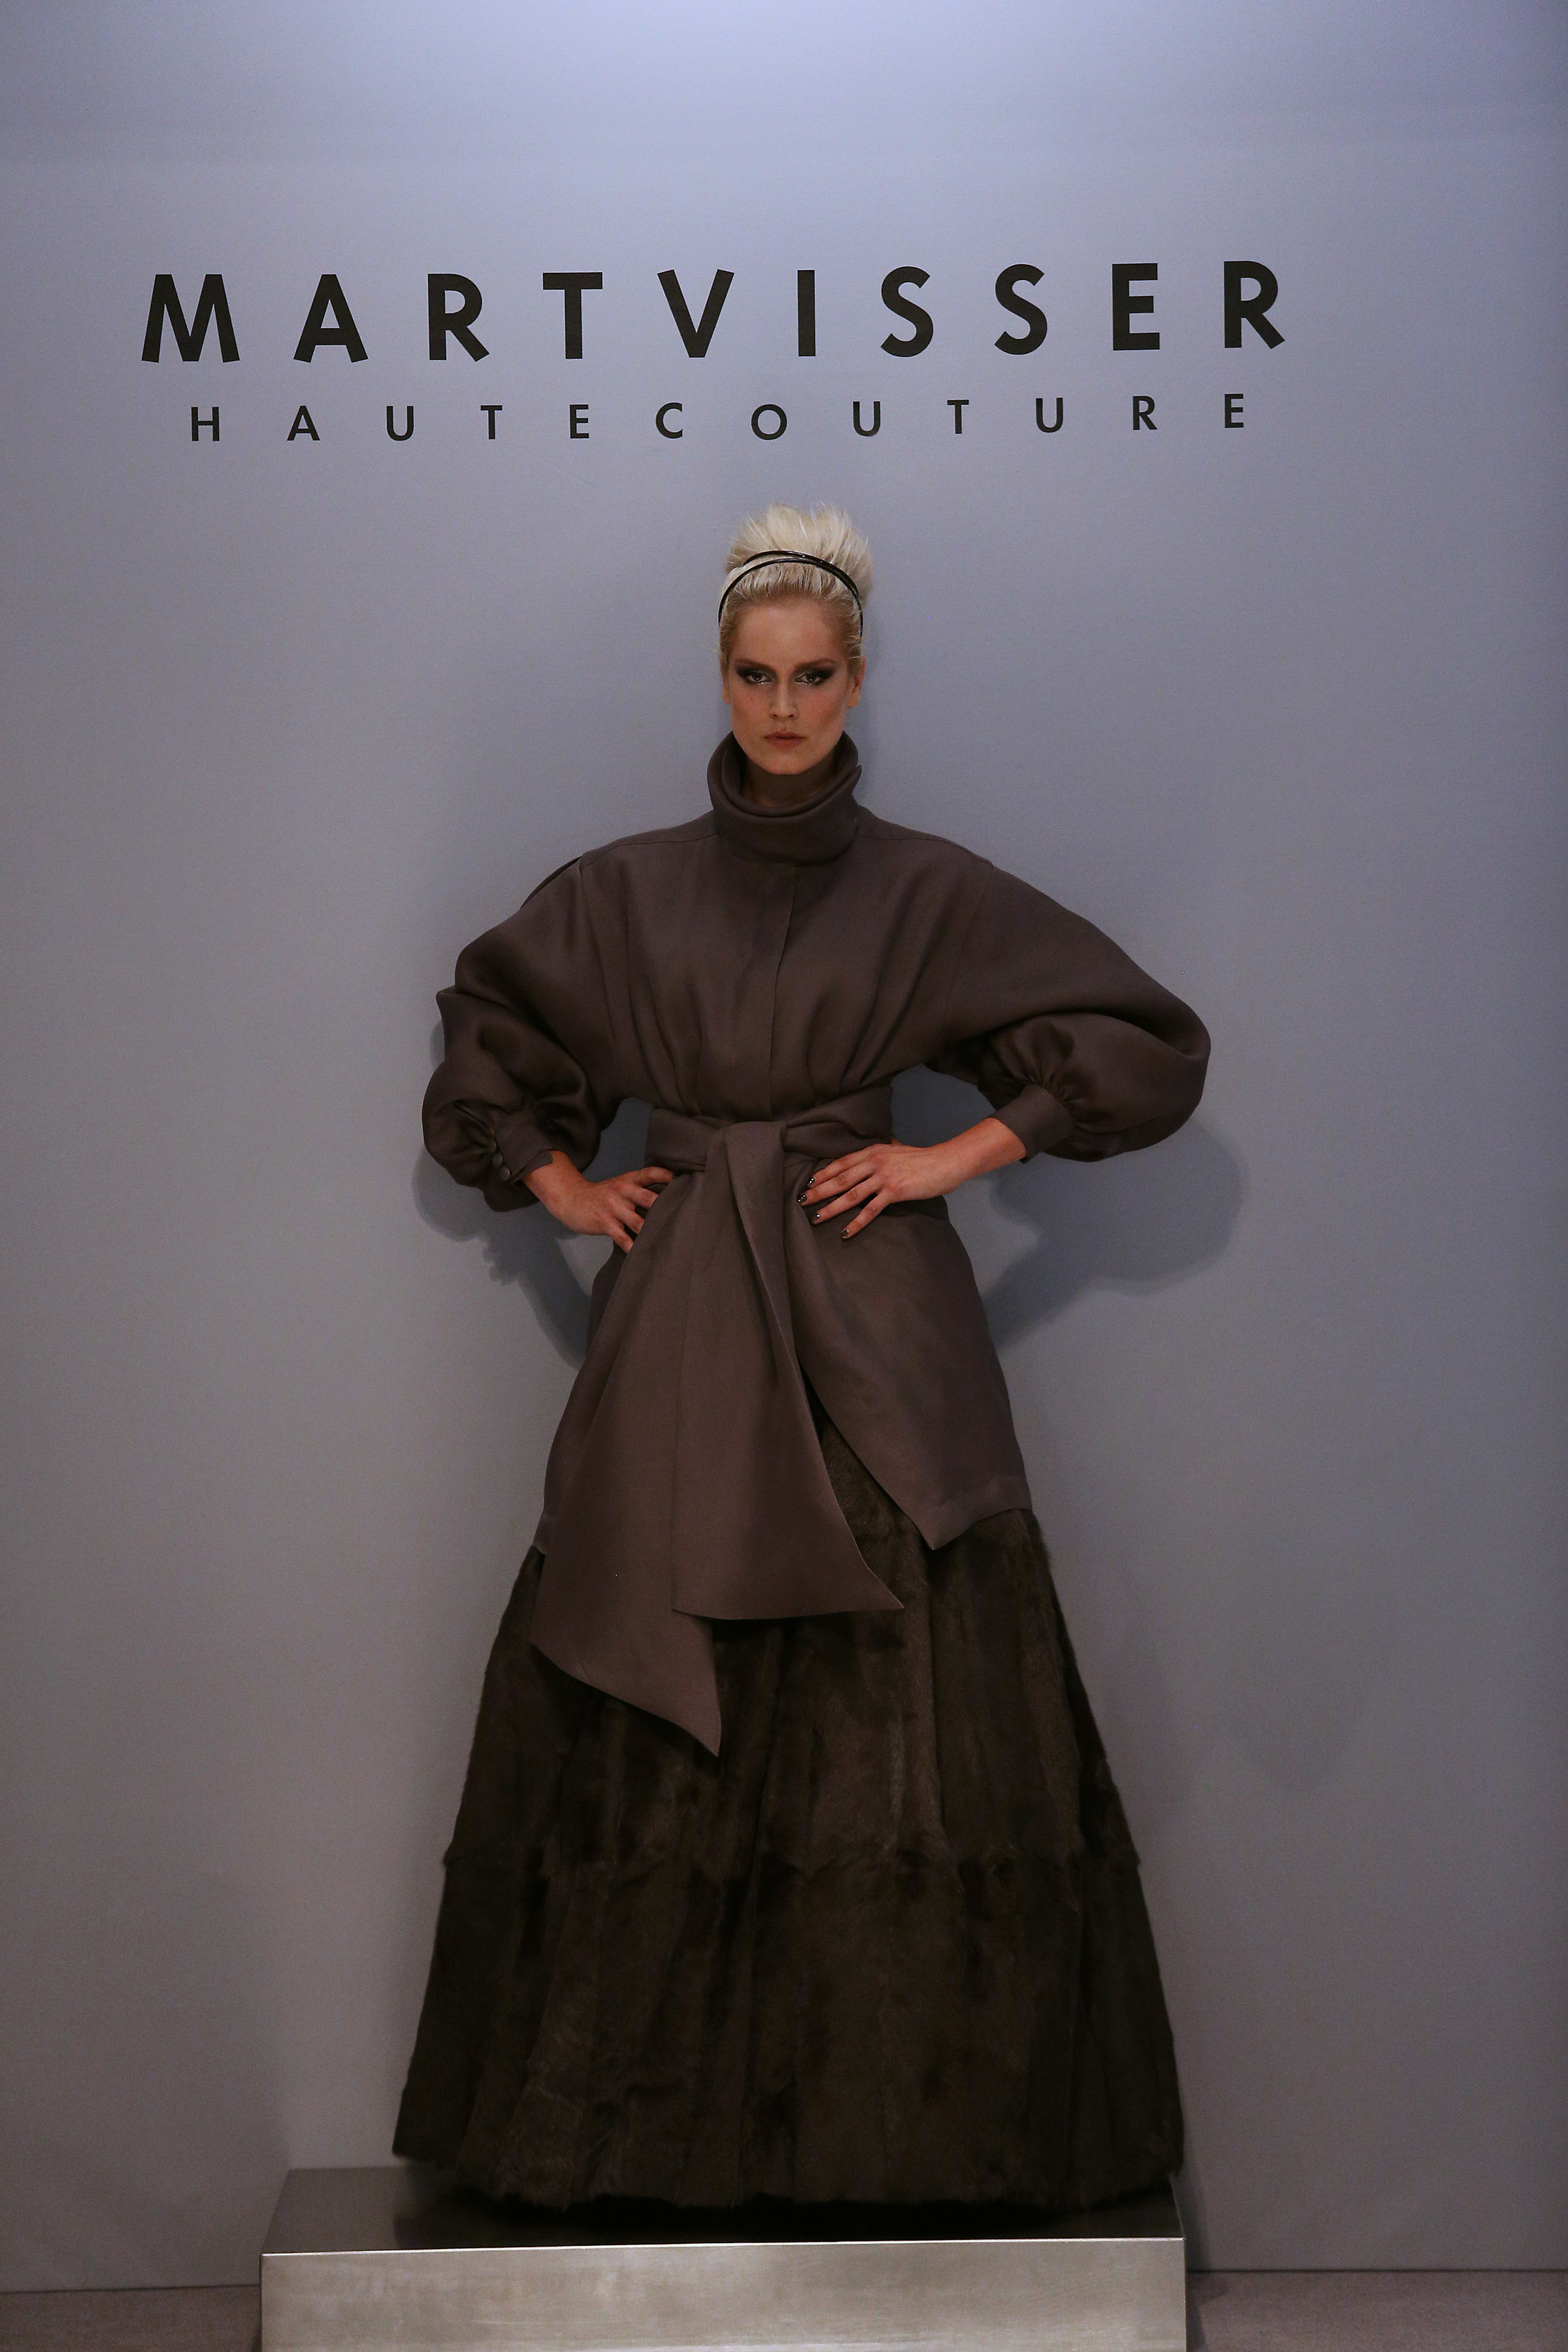 Mart Visser Haute Couture winter 2014